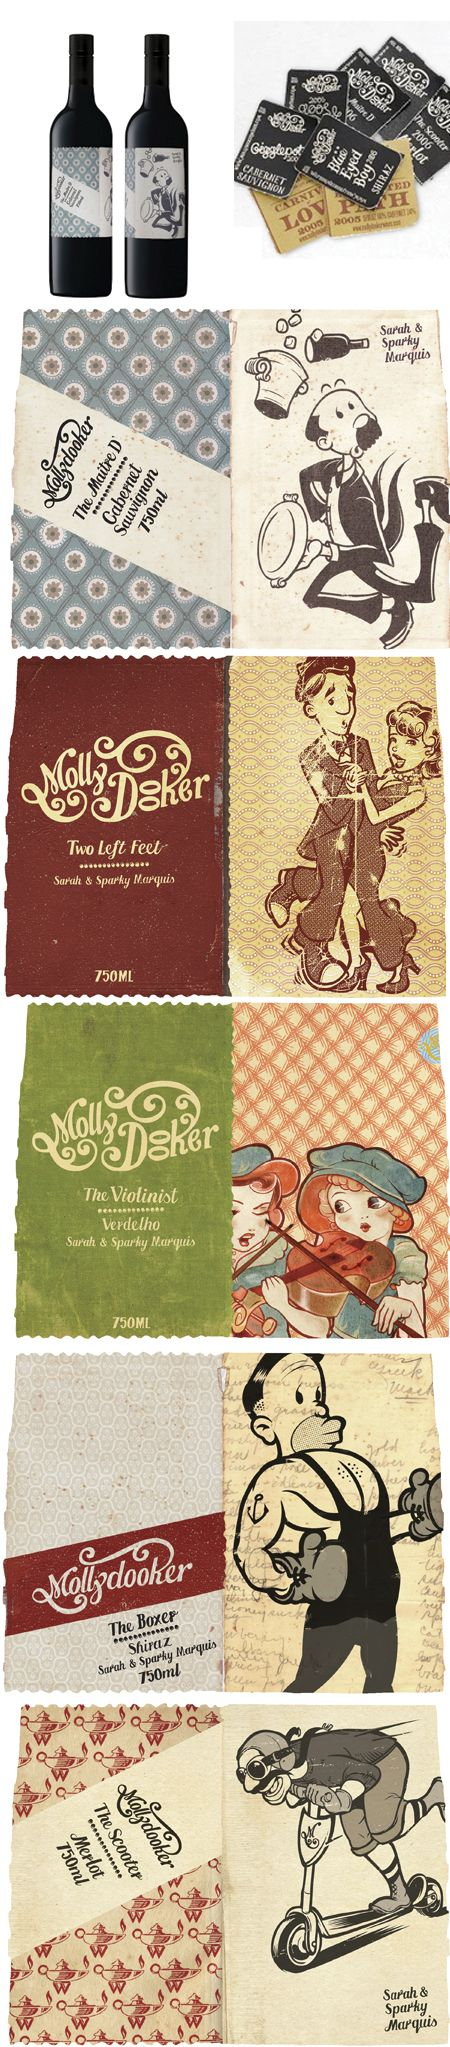 molly dooker's wine labels. other images were too small so got this off of google